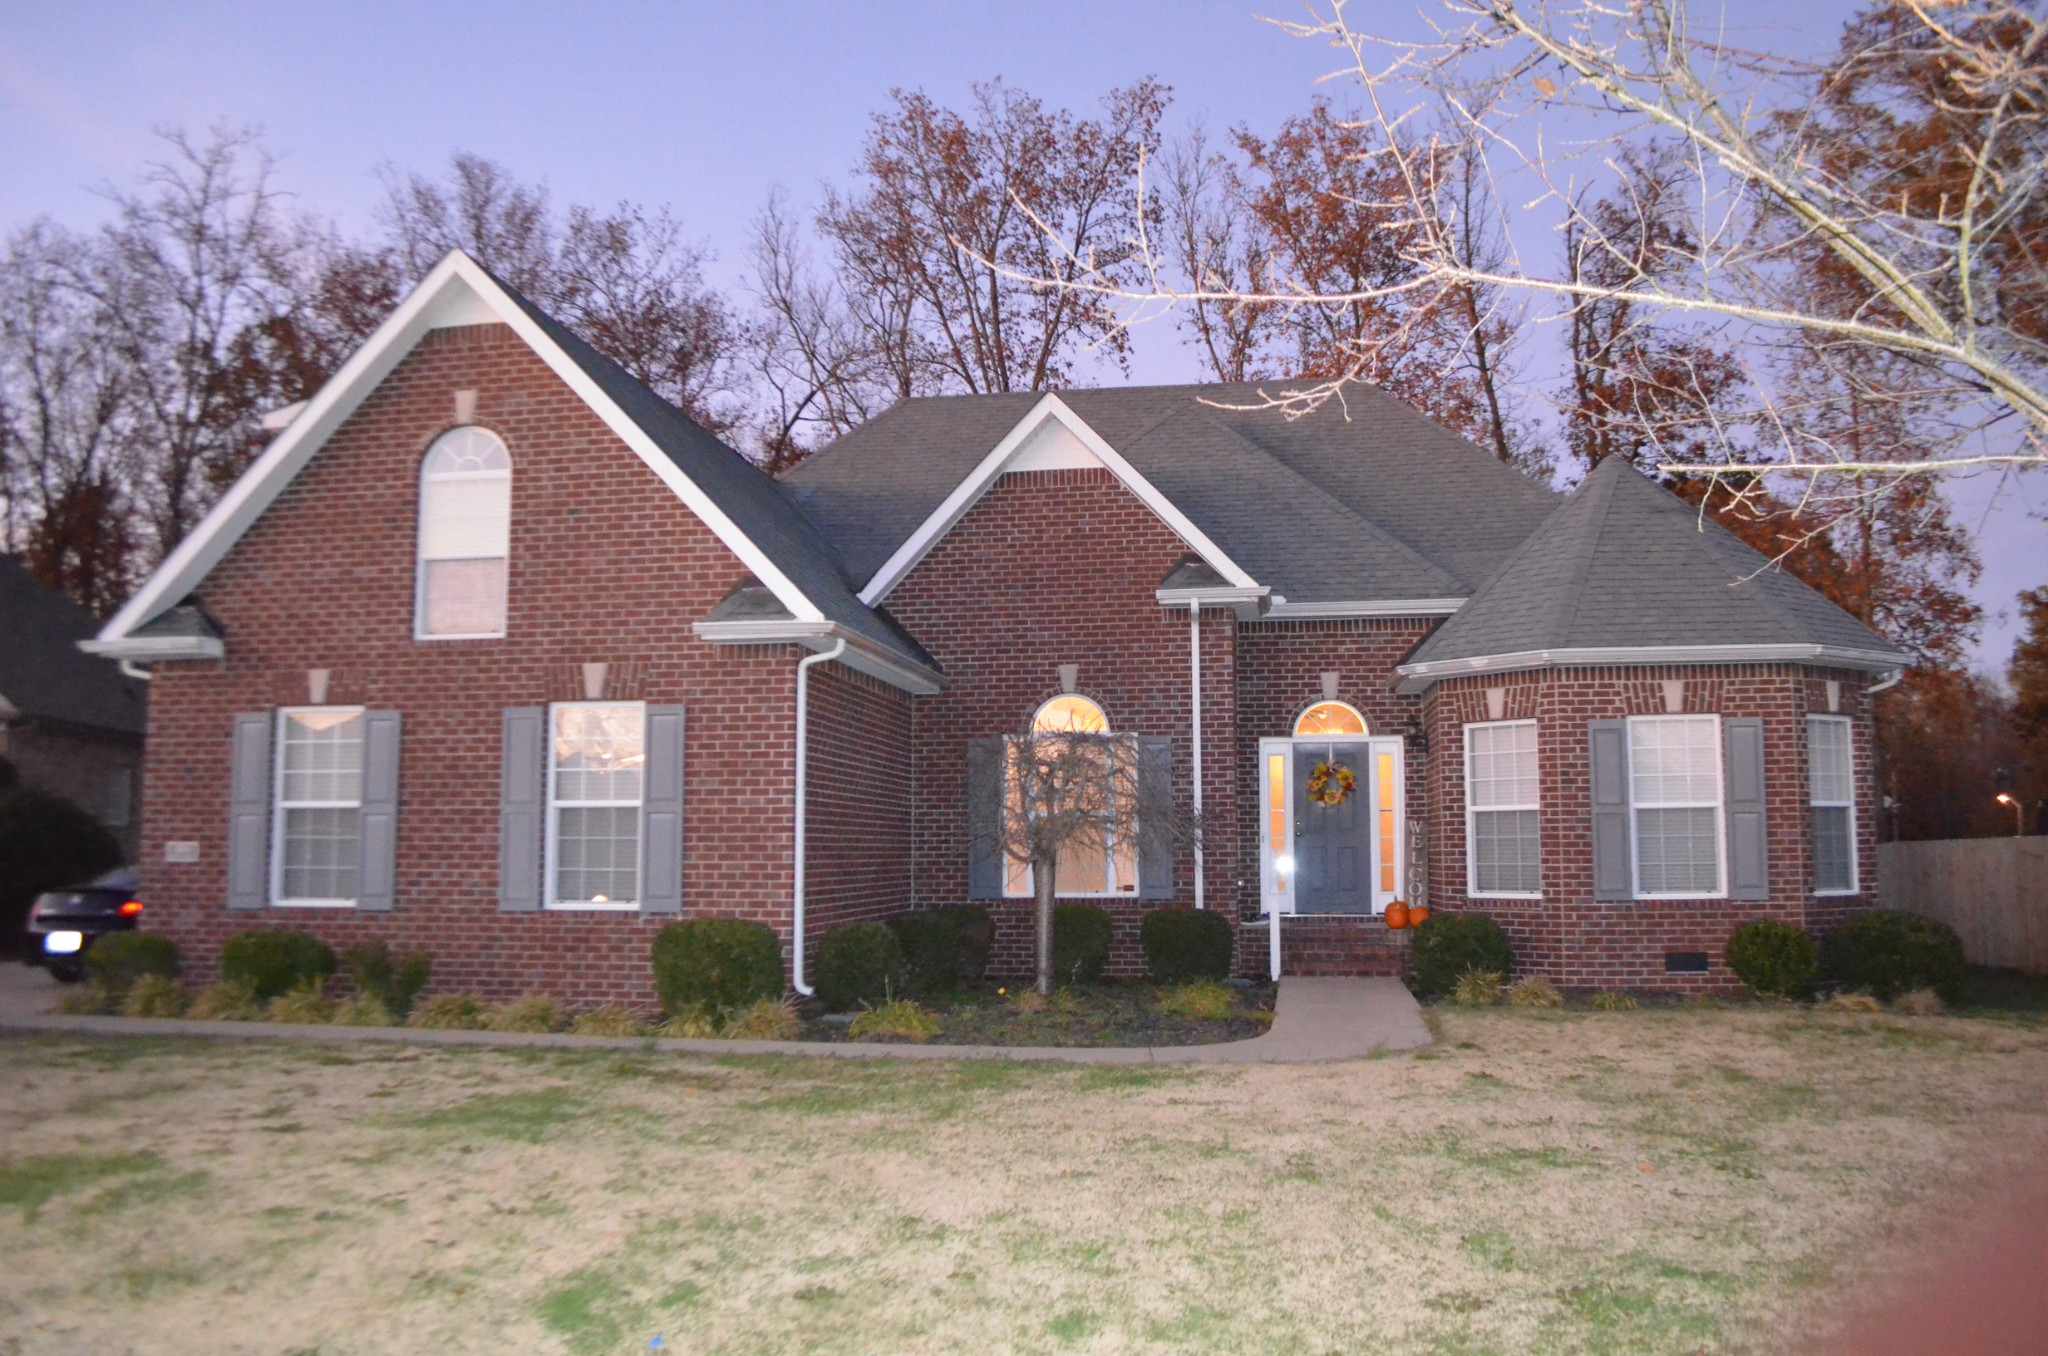 4708 Smitty Dr Property Photo - Murfreesboro, TN real estate listing